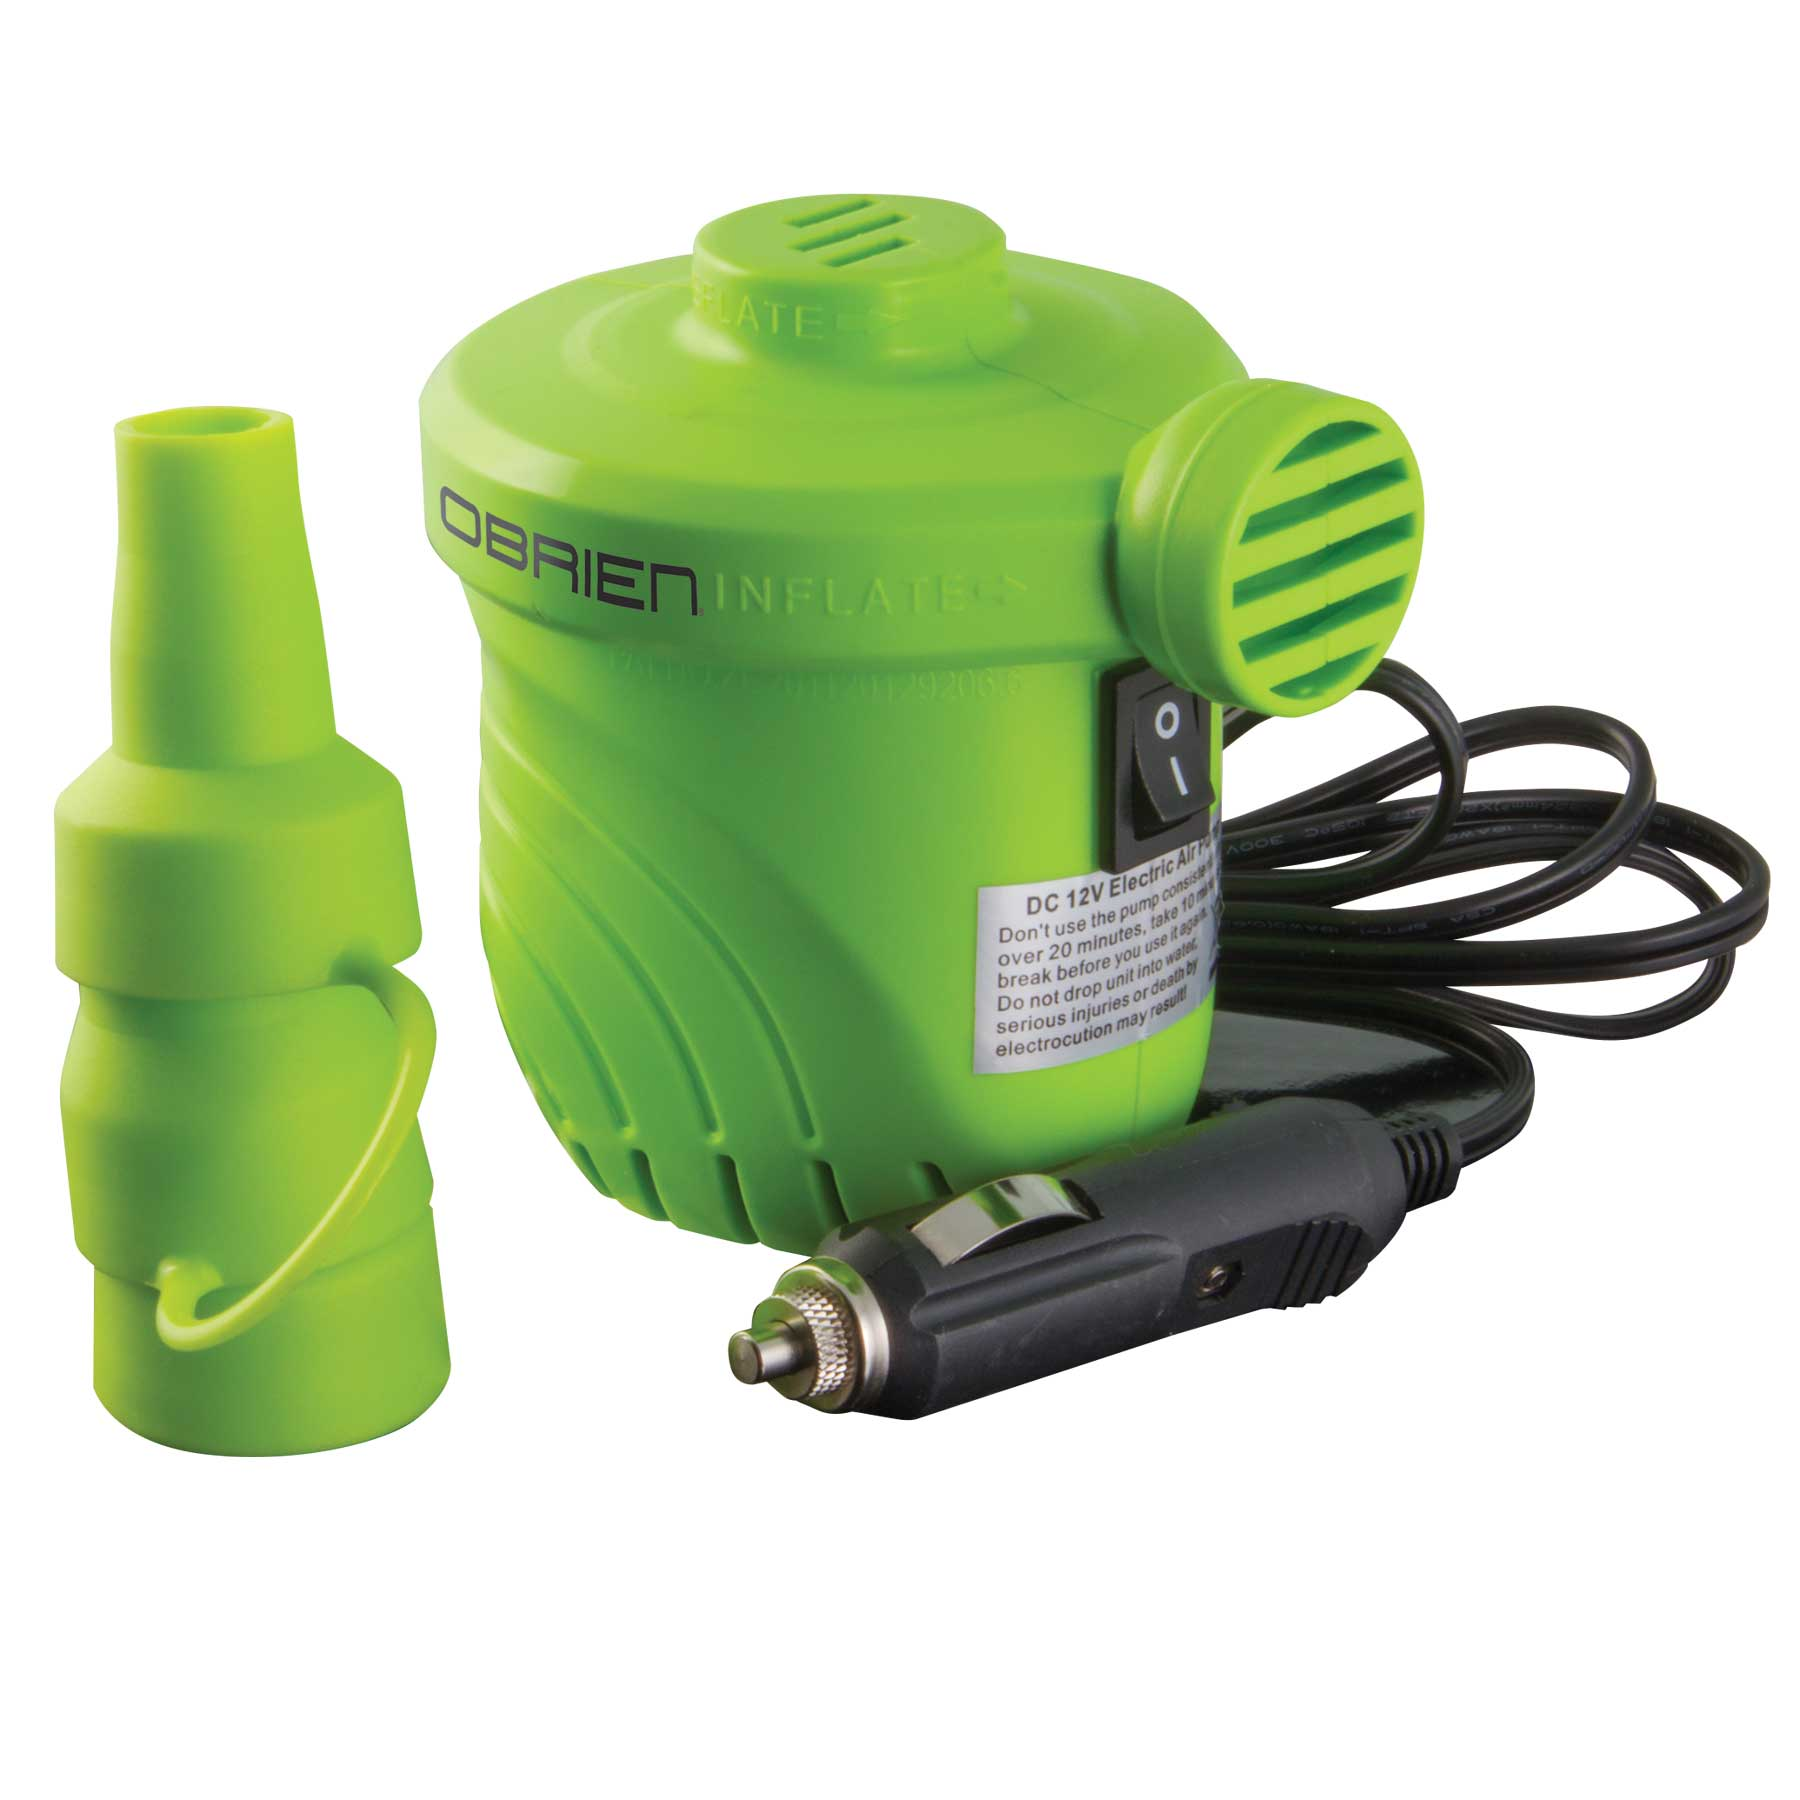 O'Brien 12v Portable Tube Pump - 88 Gear